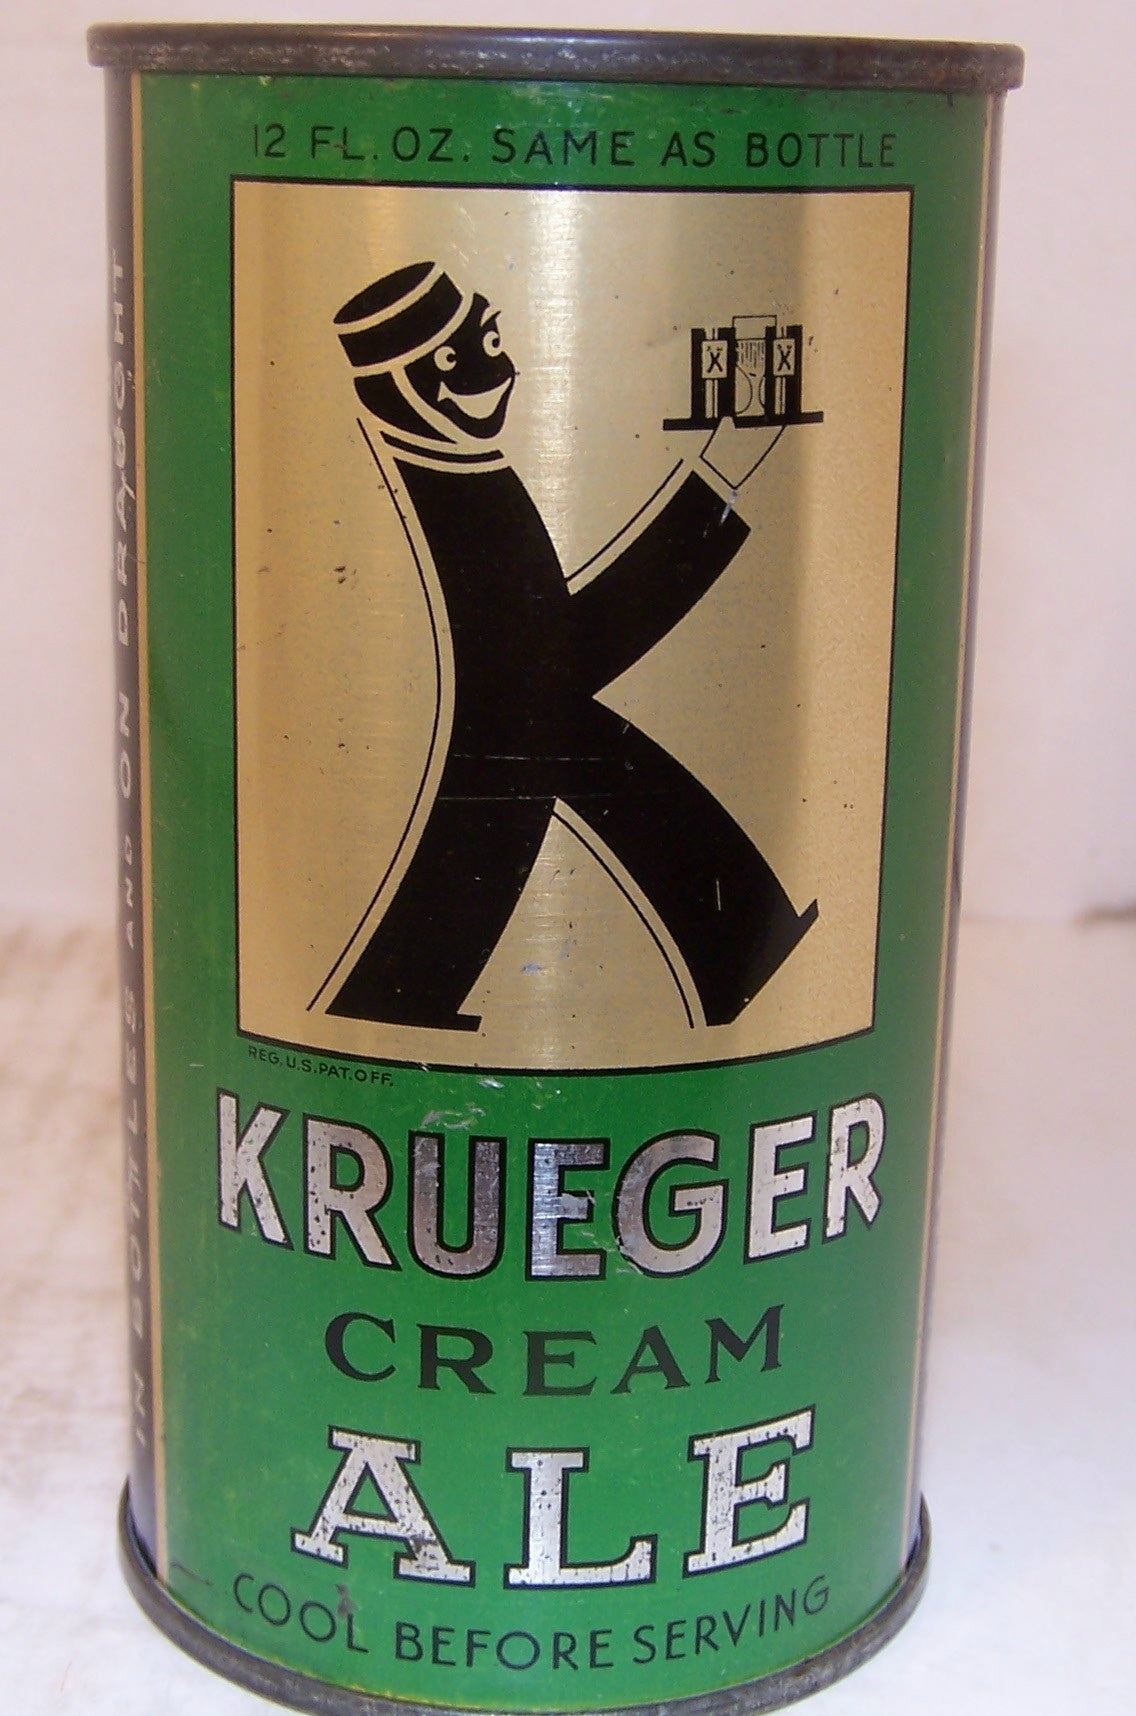 Krueger Cream Ale, Lilek page # 465, Grade 1 to 1/1+ Sold 12/26/14